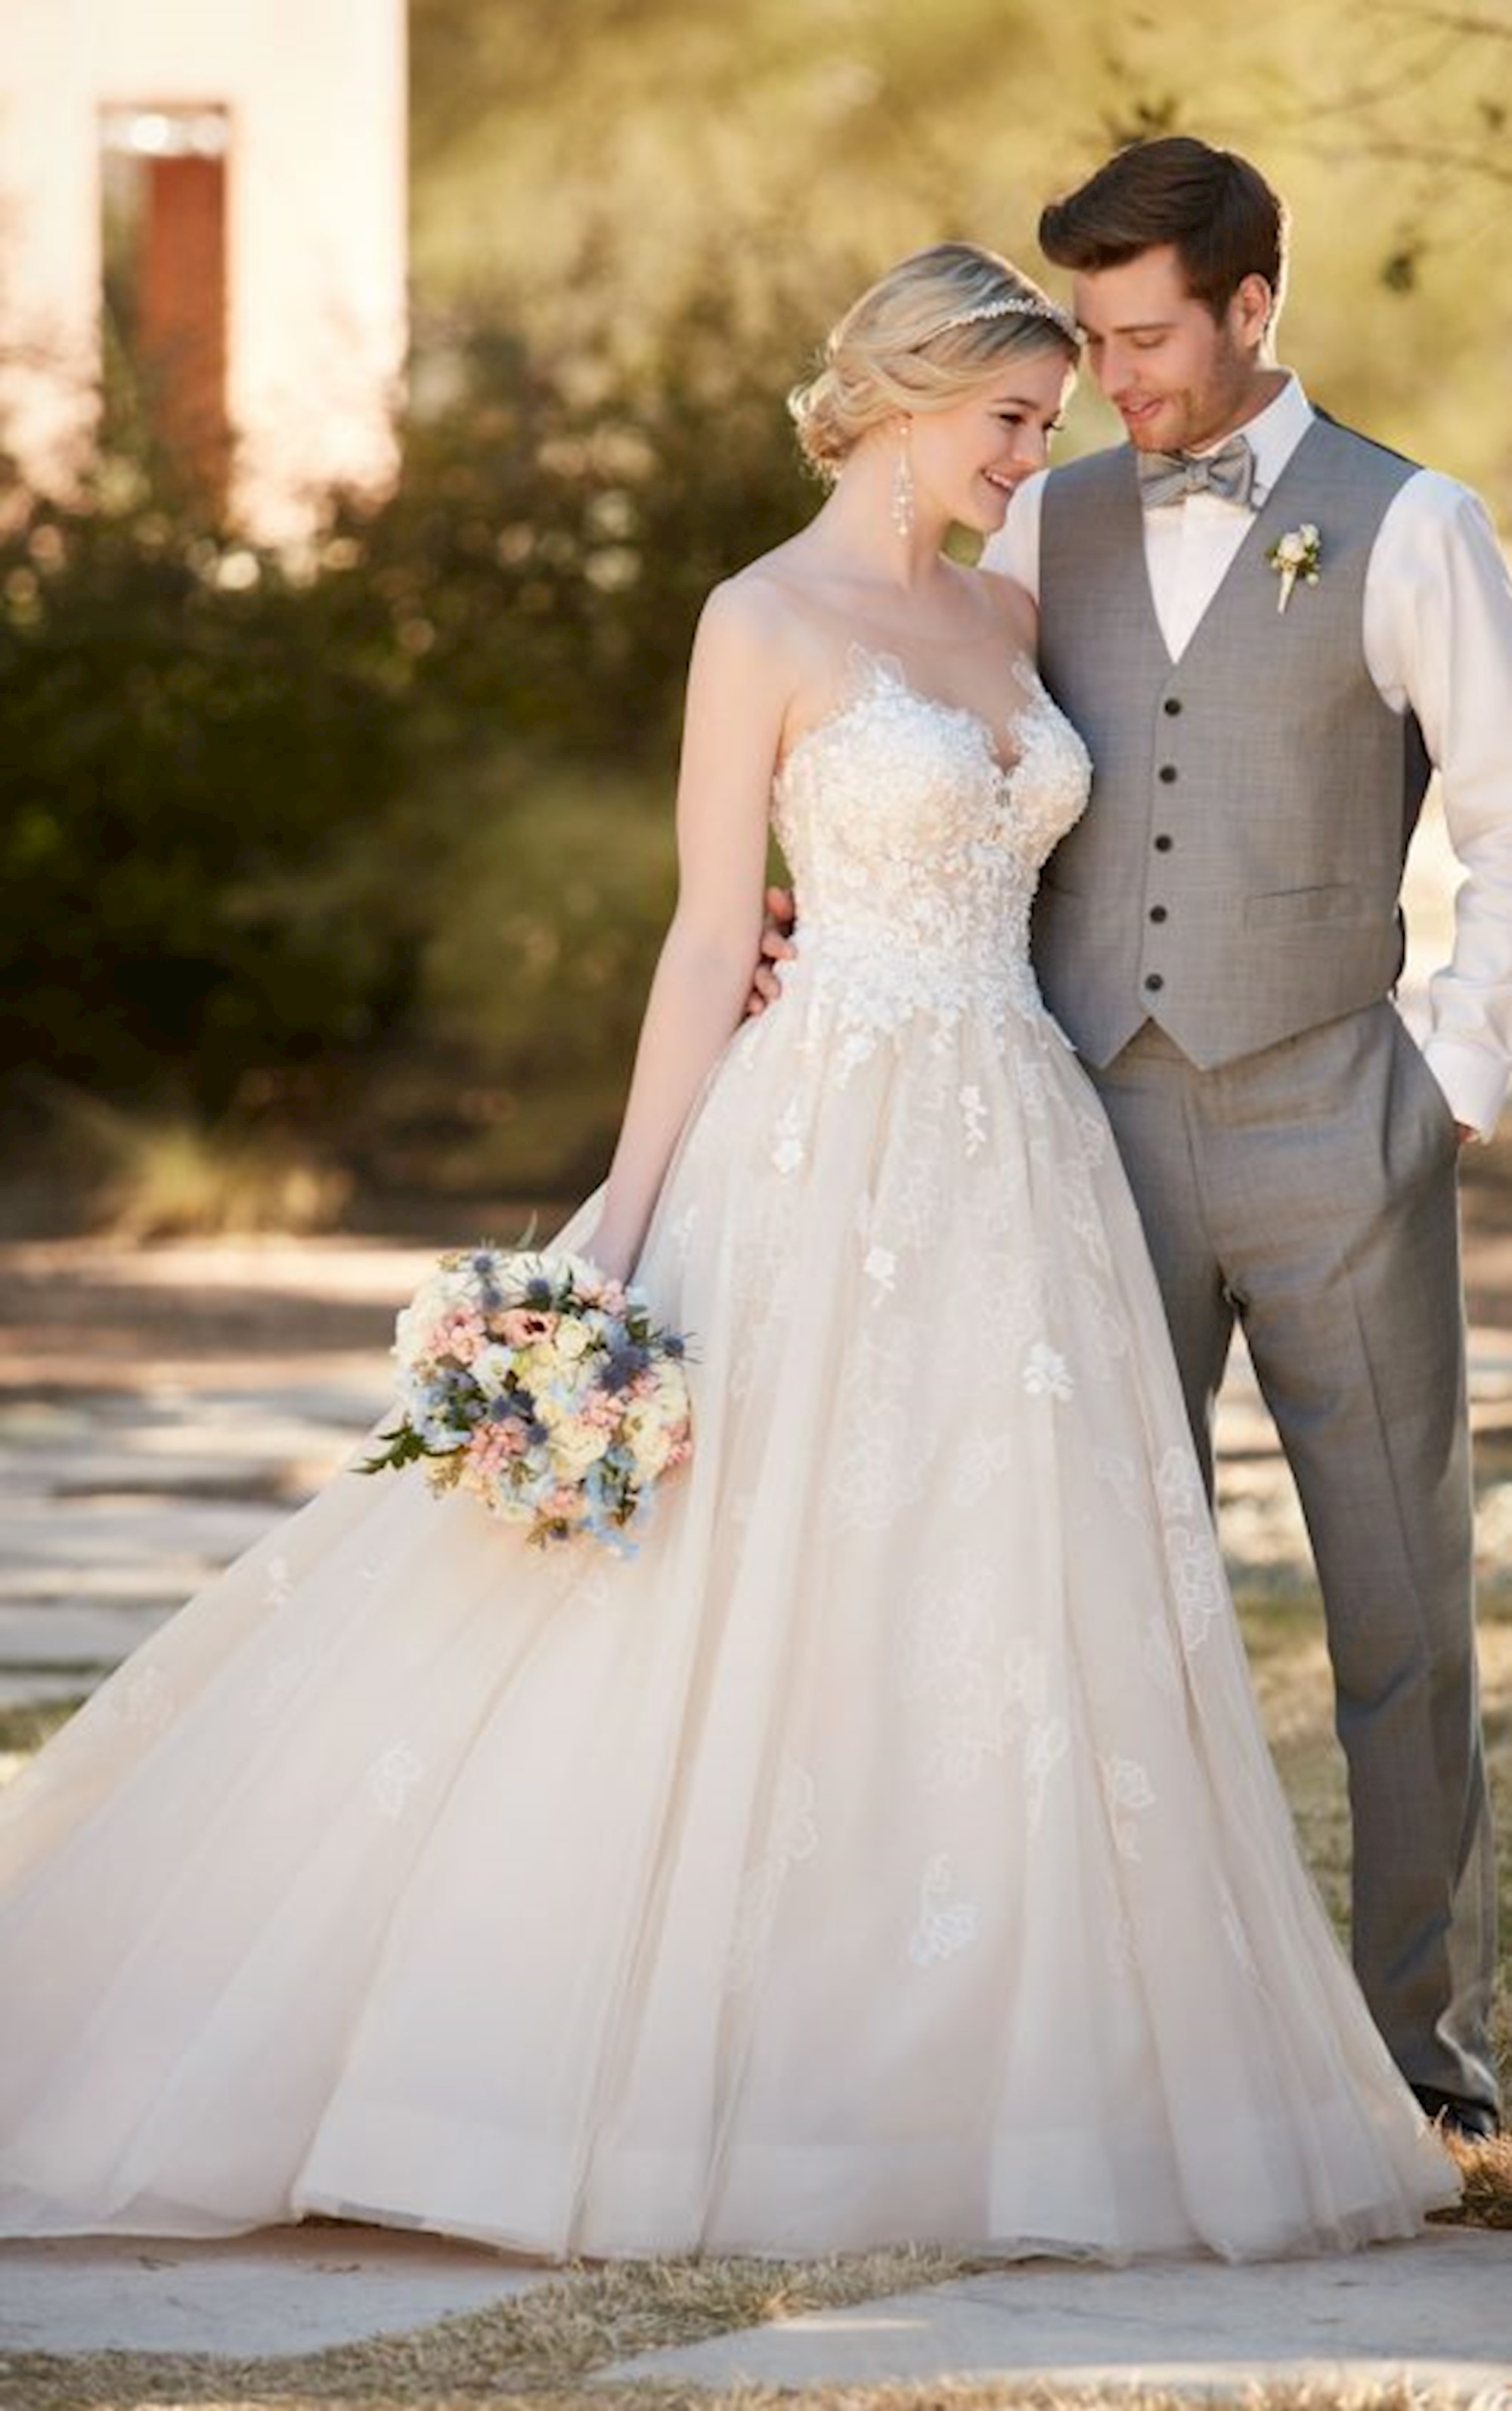 Essense of Australia Bridal Dresses | Regiss in Kentucky - D2126